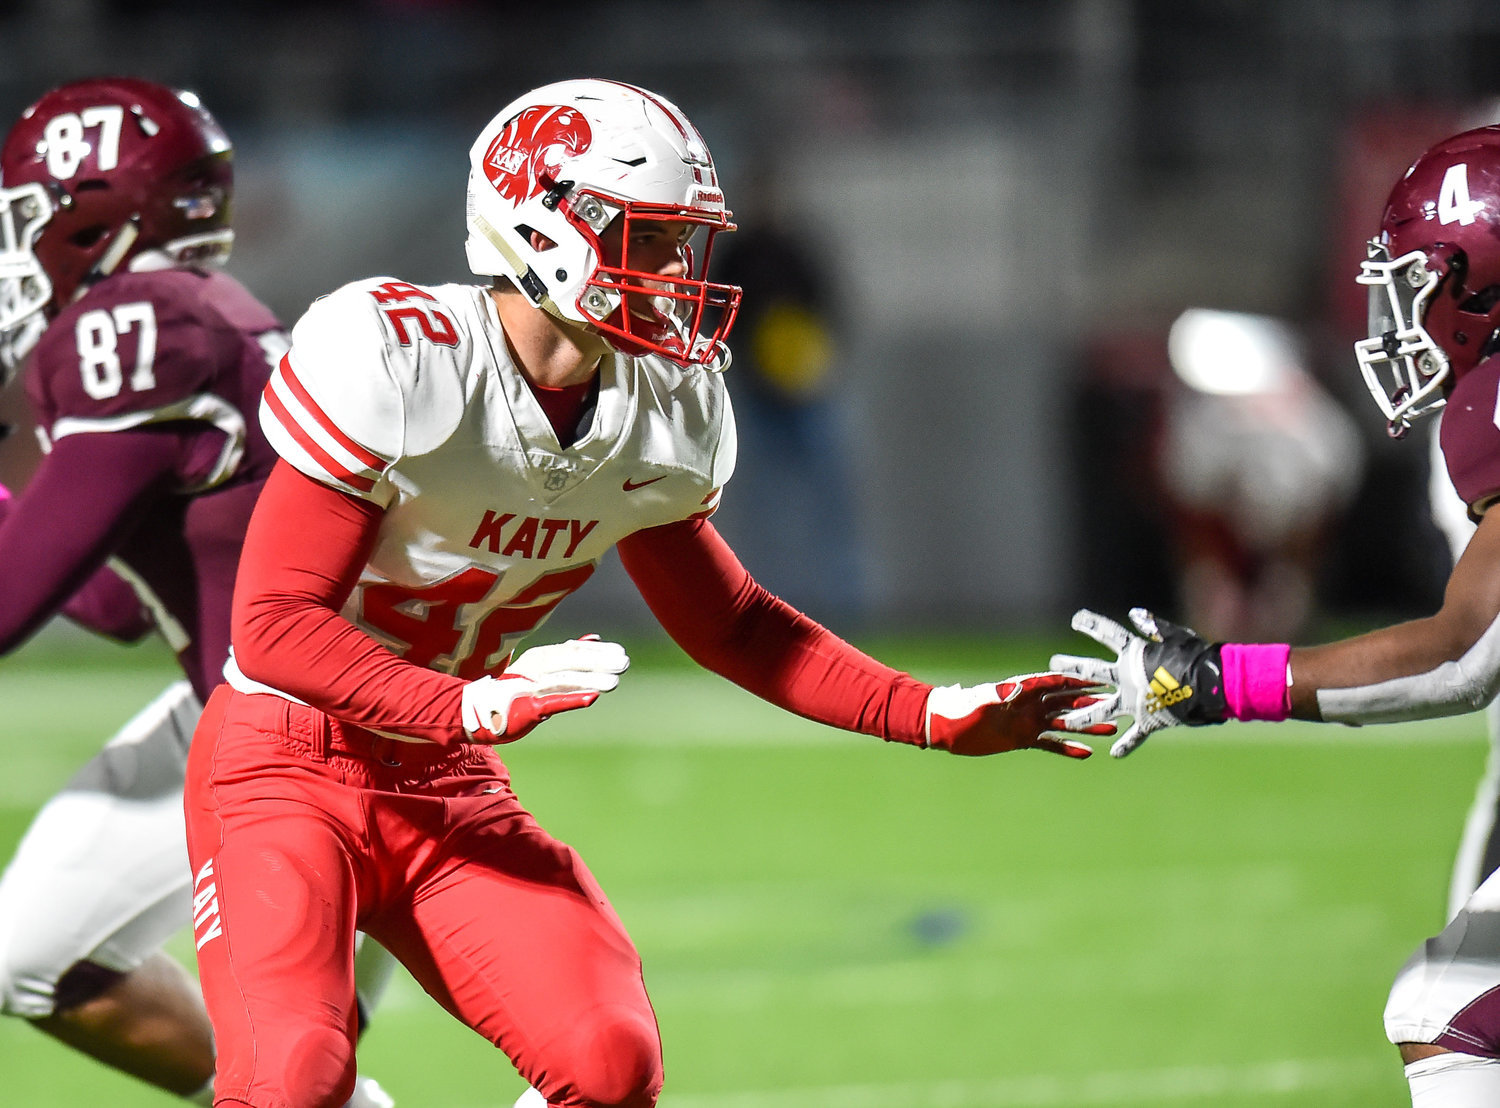 Hunter Washington suits up for his final season for Katy as a Florida State commit and was one of three Tiger defenders on MaxPreps' preseason all-state team.